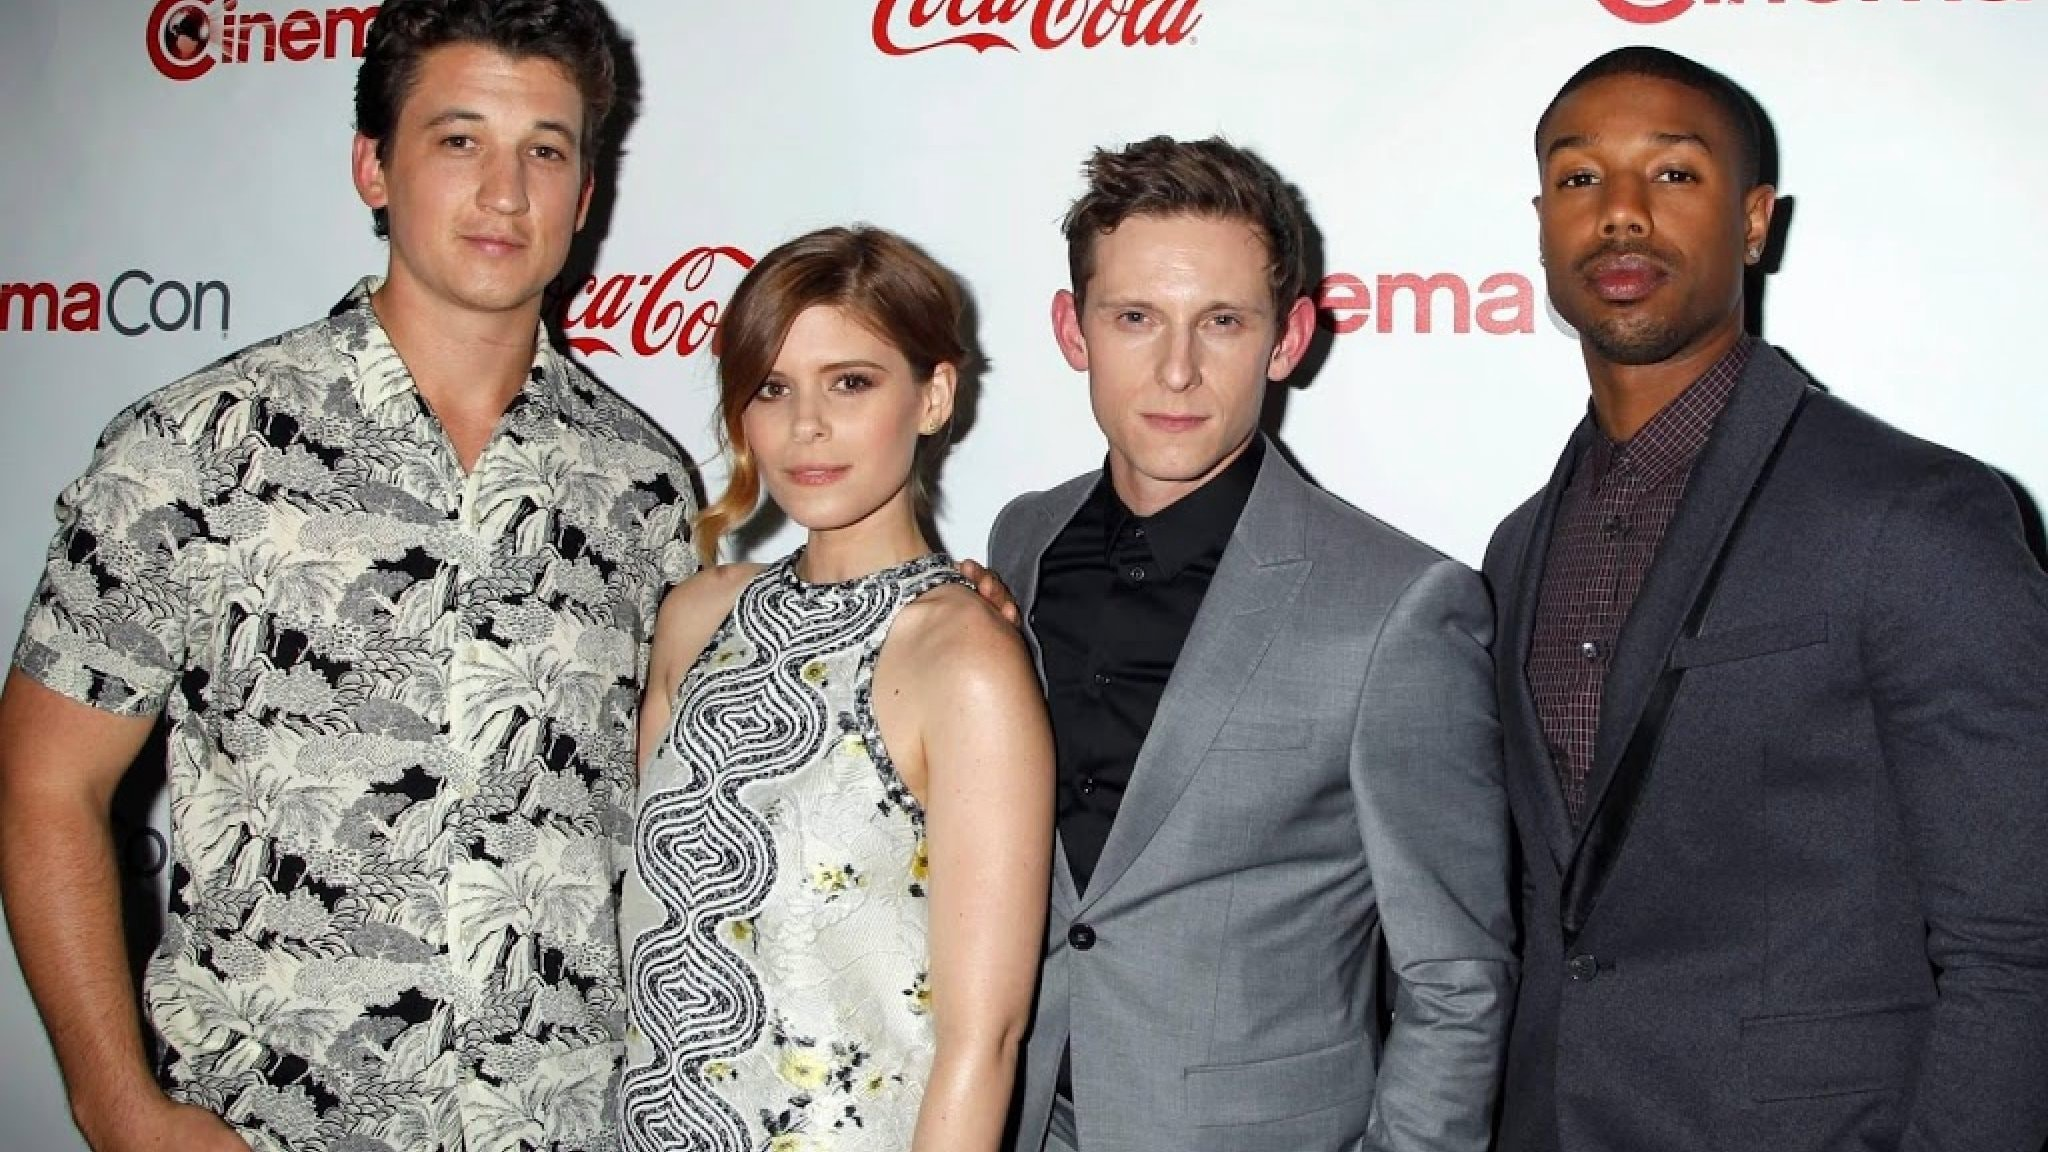 The  Fantastic Four cast in happier times (before seeing the movie)